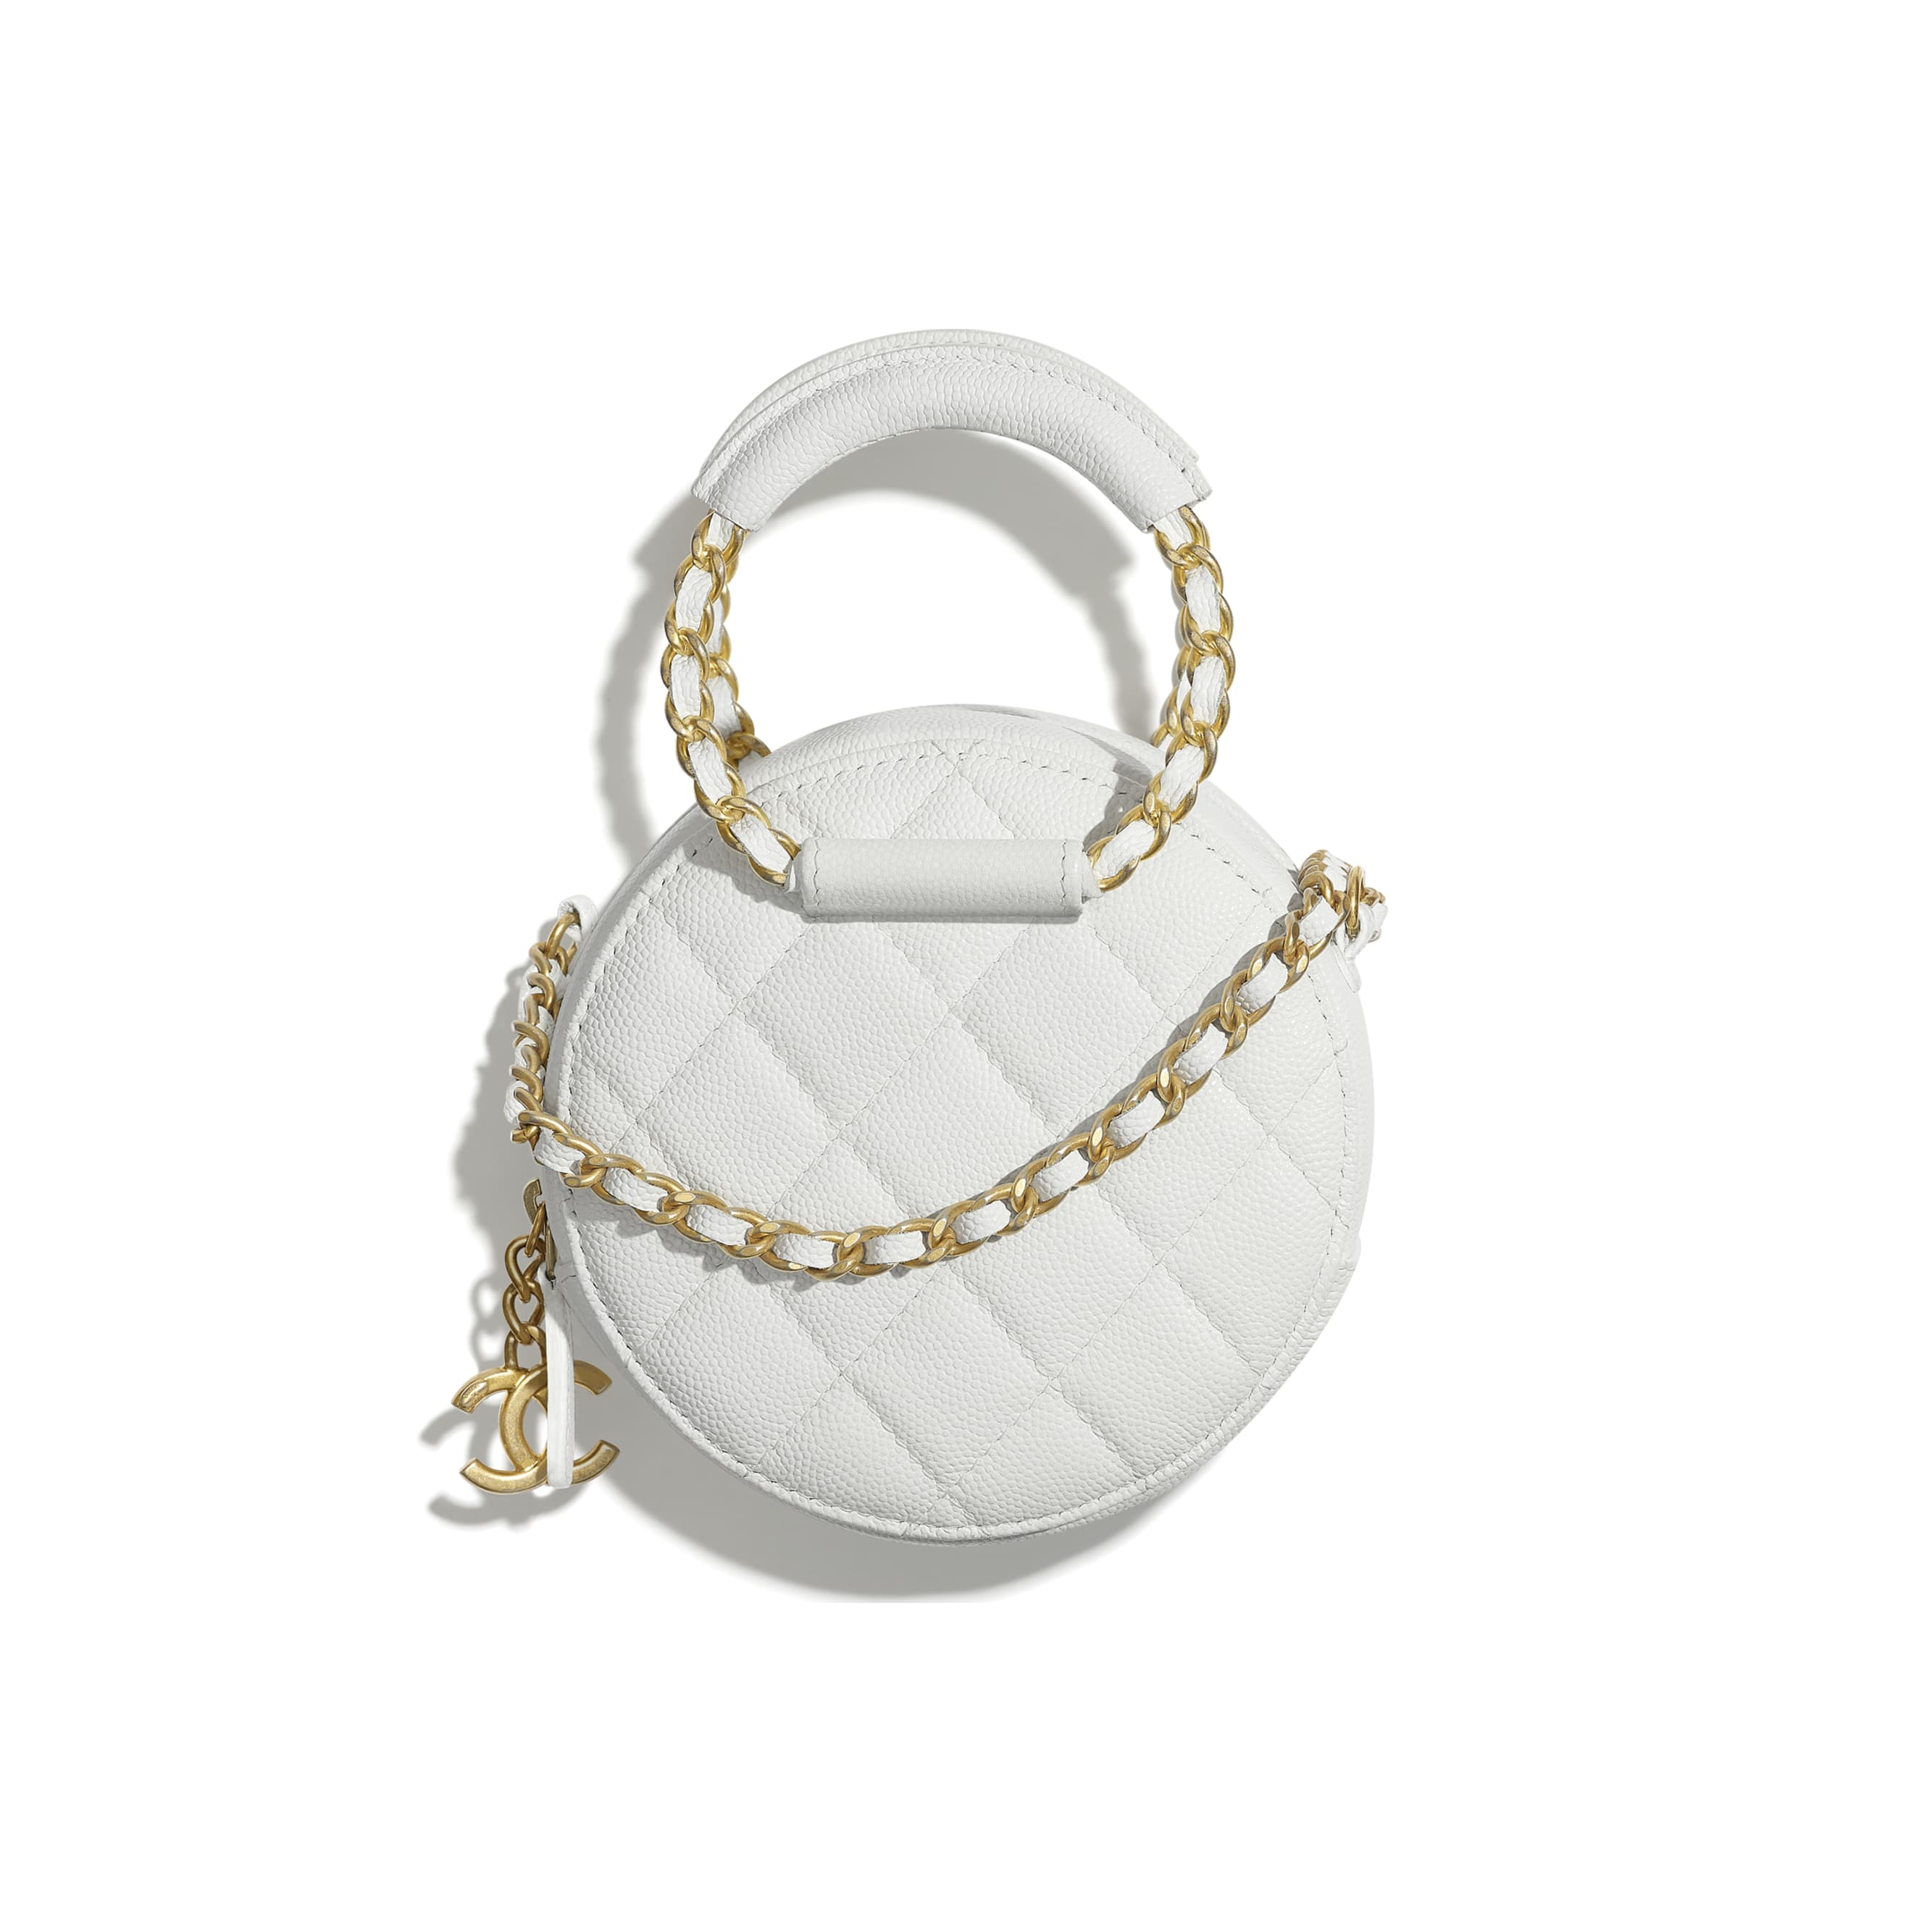 Clutch With Chain - White - Grained Shiny Calfskin & Gold-Tone Metal - CHANEL - Default view - see standard sized version